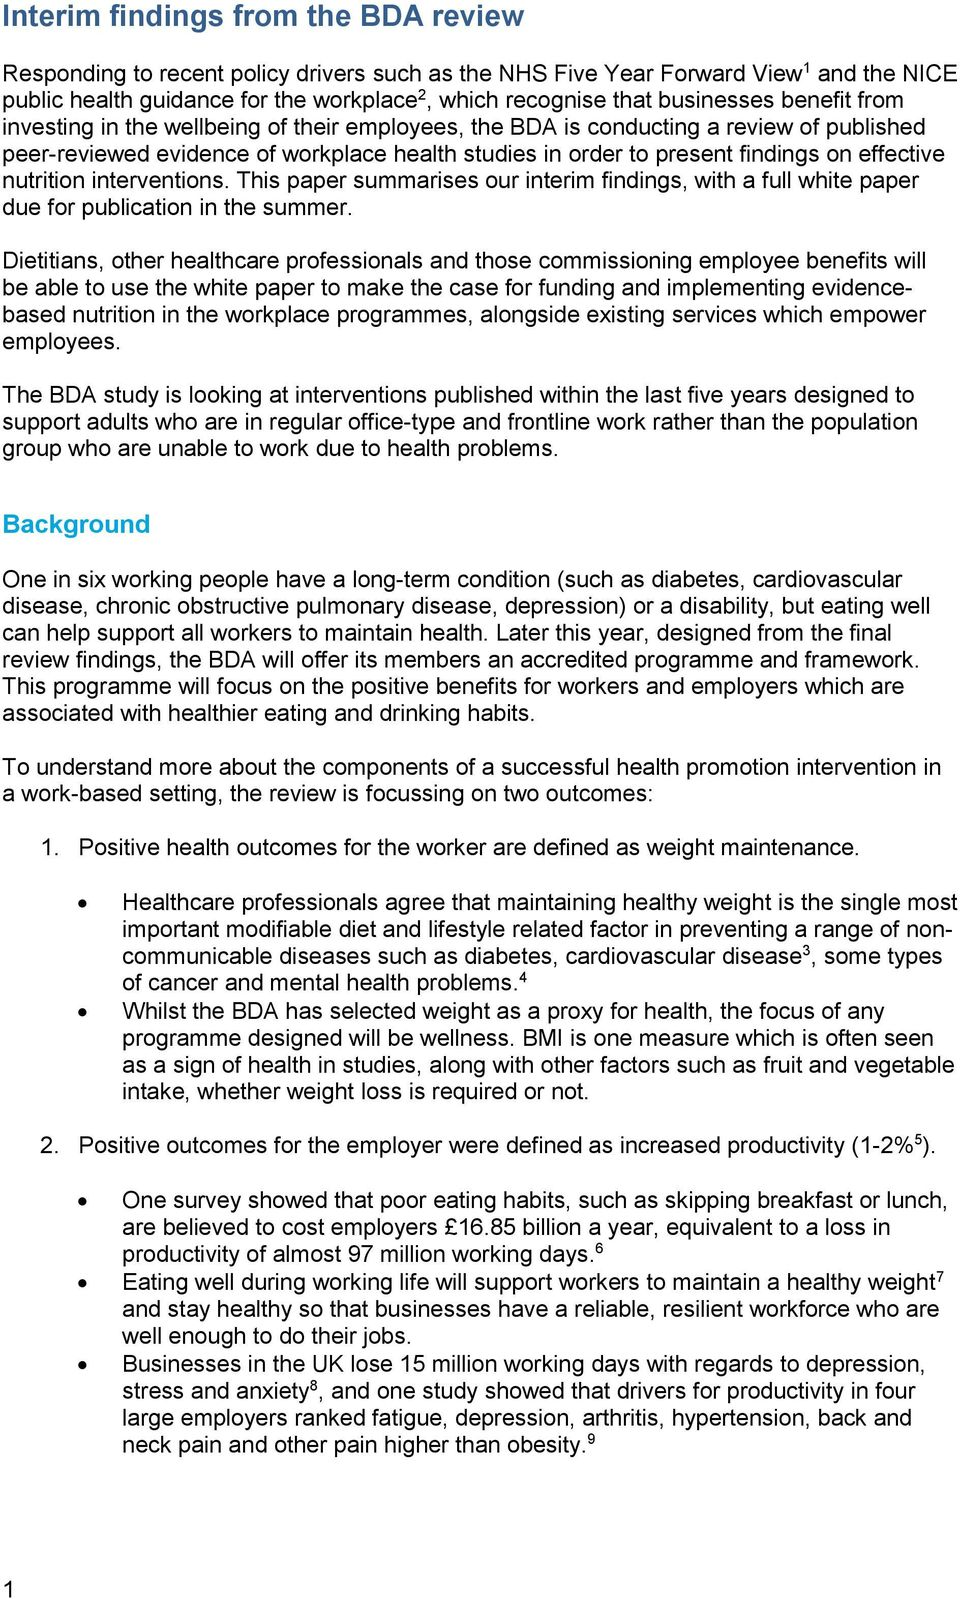 effective nutrition interventions. This paper summarises our interim findings, with a full white paper due for publication in the summer.